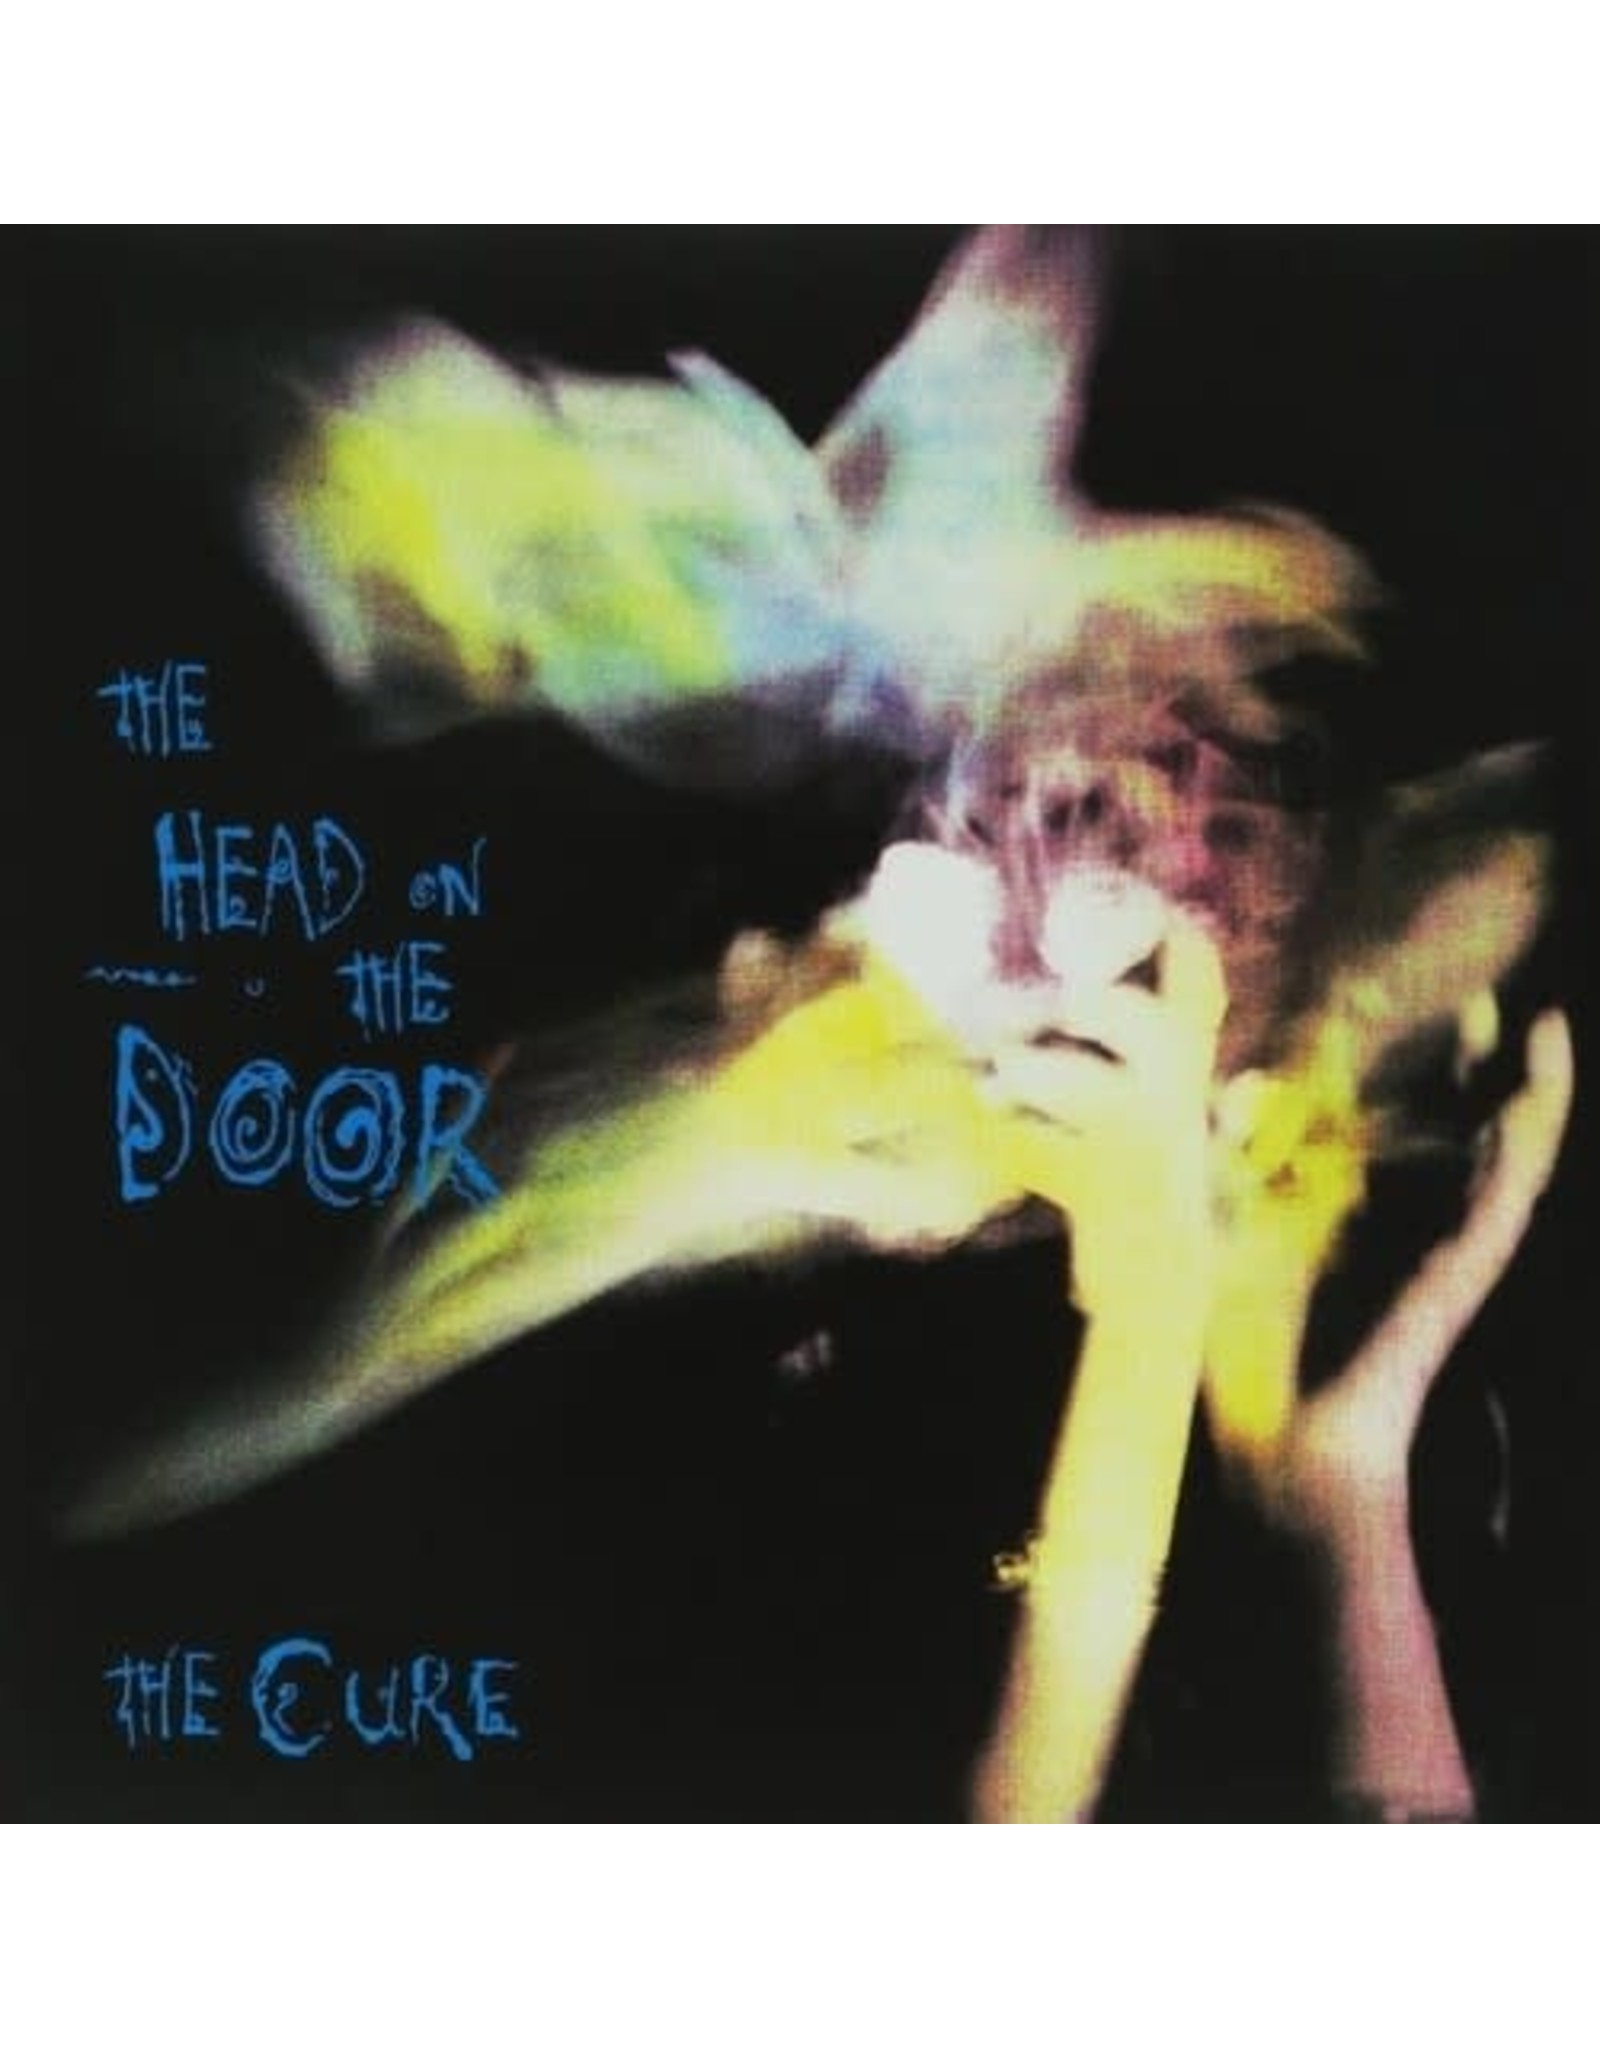 New Vinyl The Cure - The Head On The Door [UK Import] LP